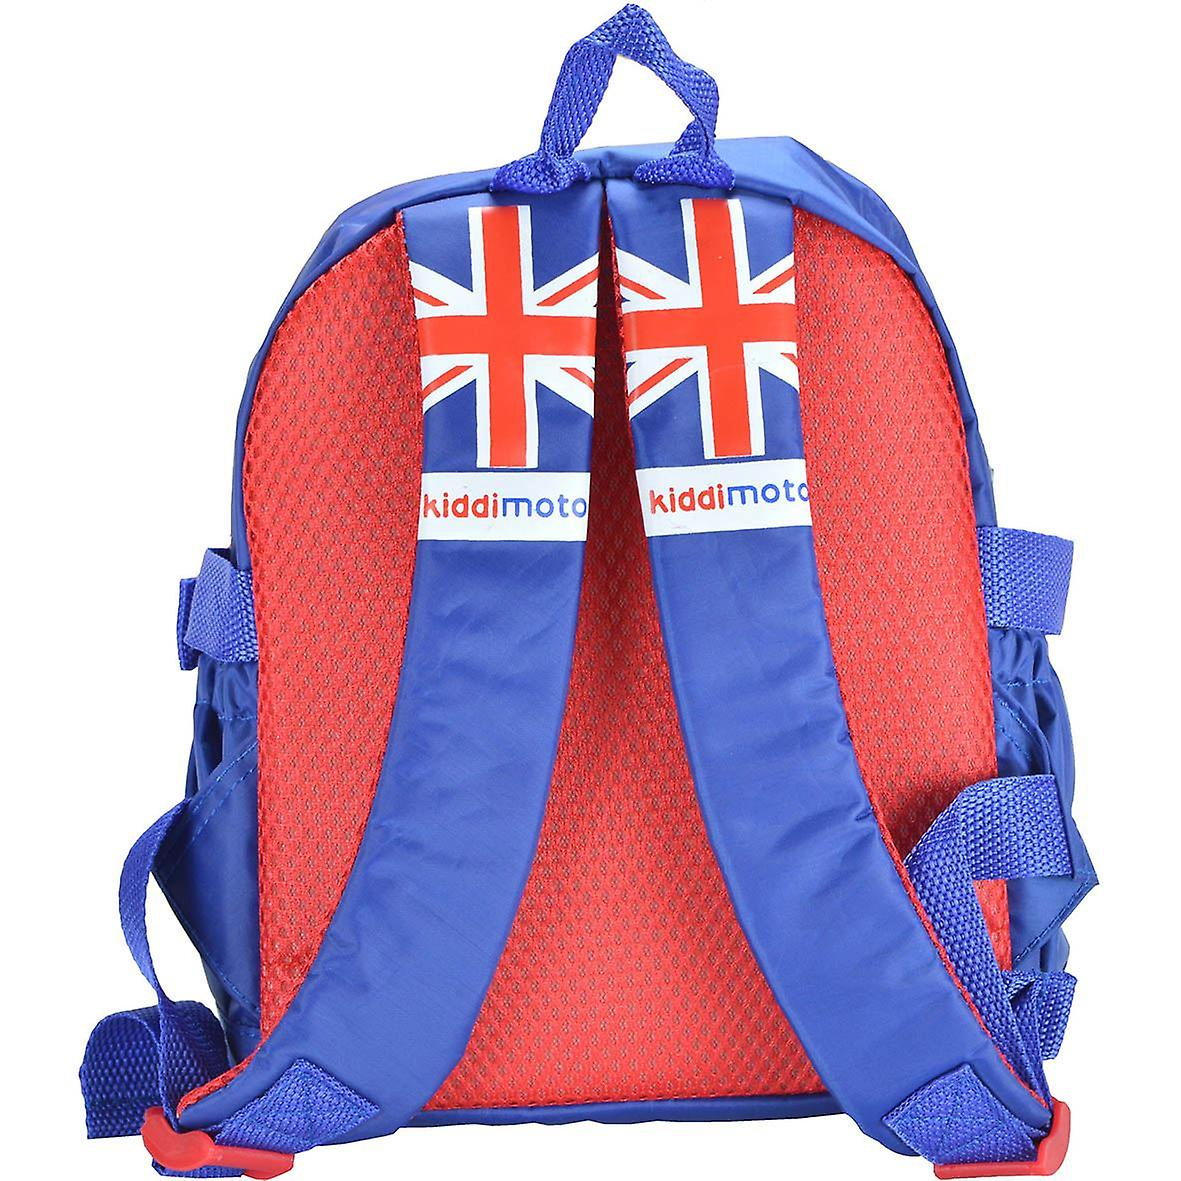 Kiddimoto Large or Small Backpack with padded shoulder straps